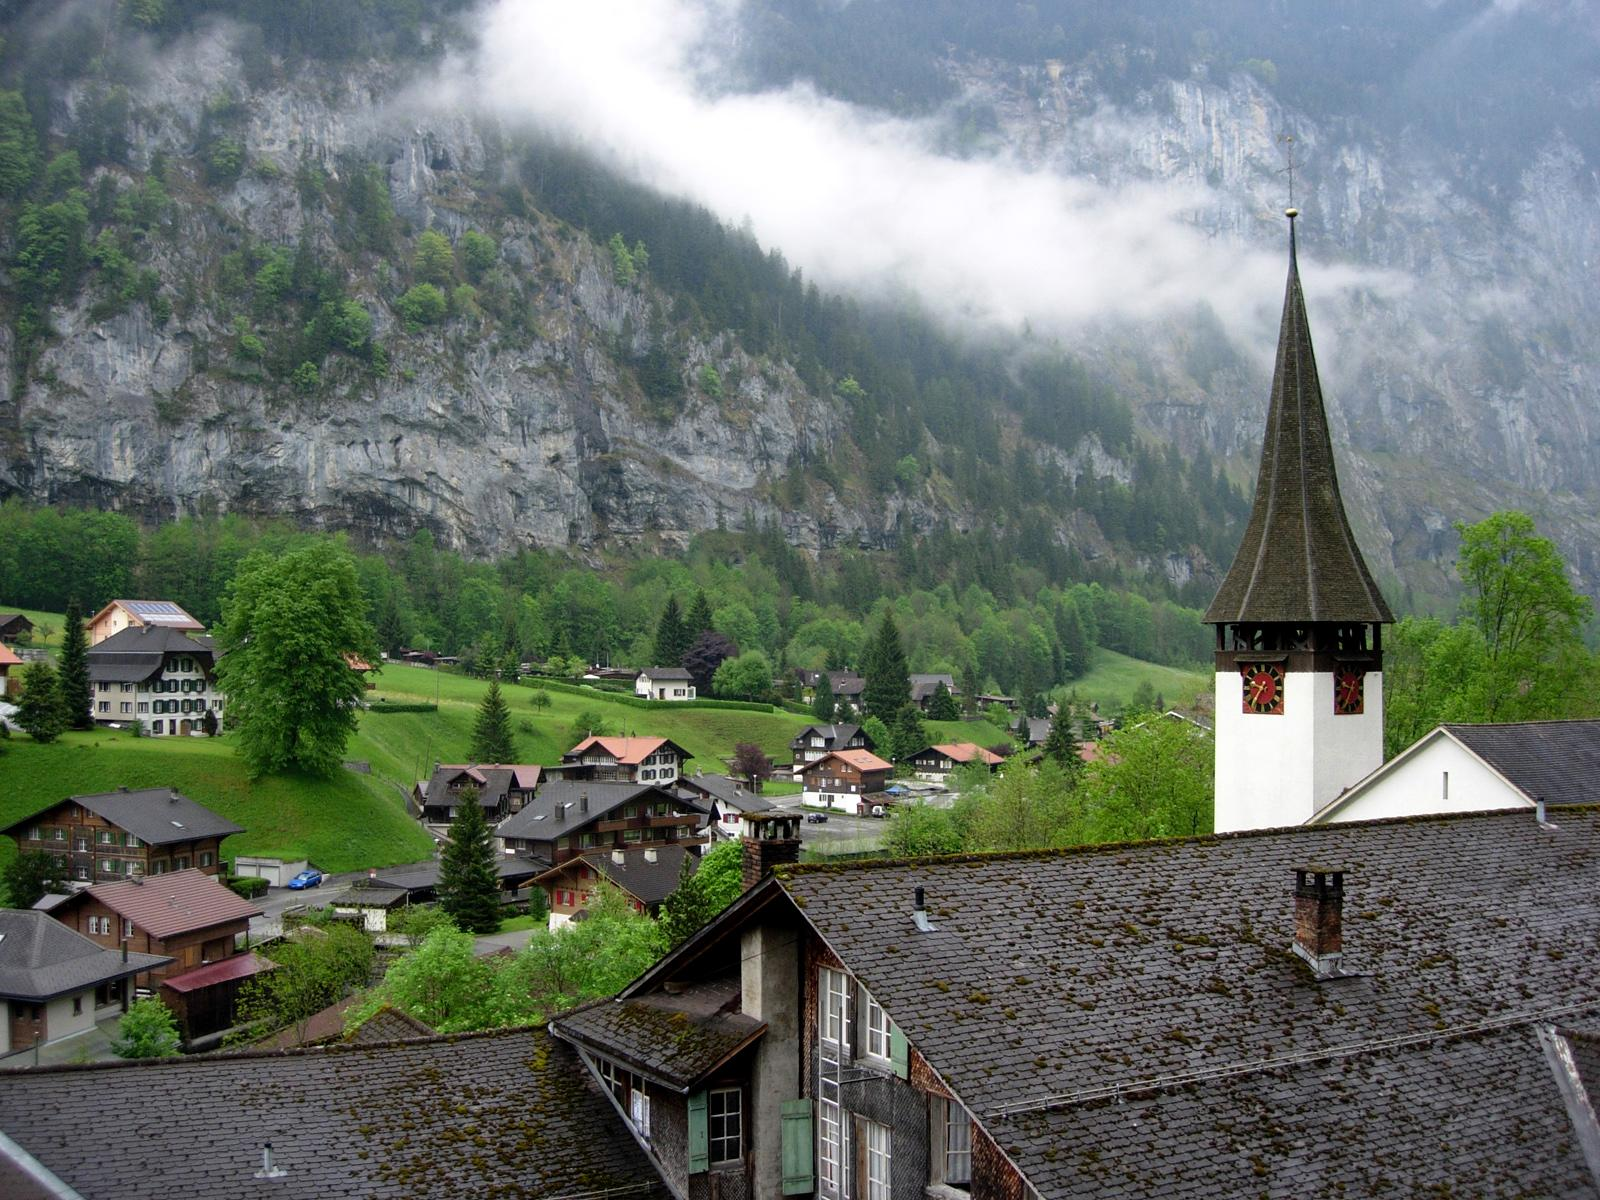 https://upload.wikimedia.org/wikipedia/commons/1/19/Lauterbrunnen.jpg